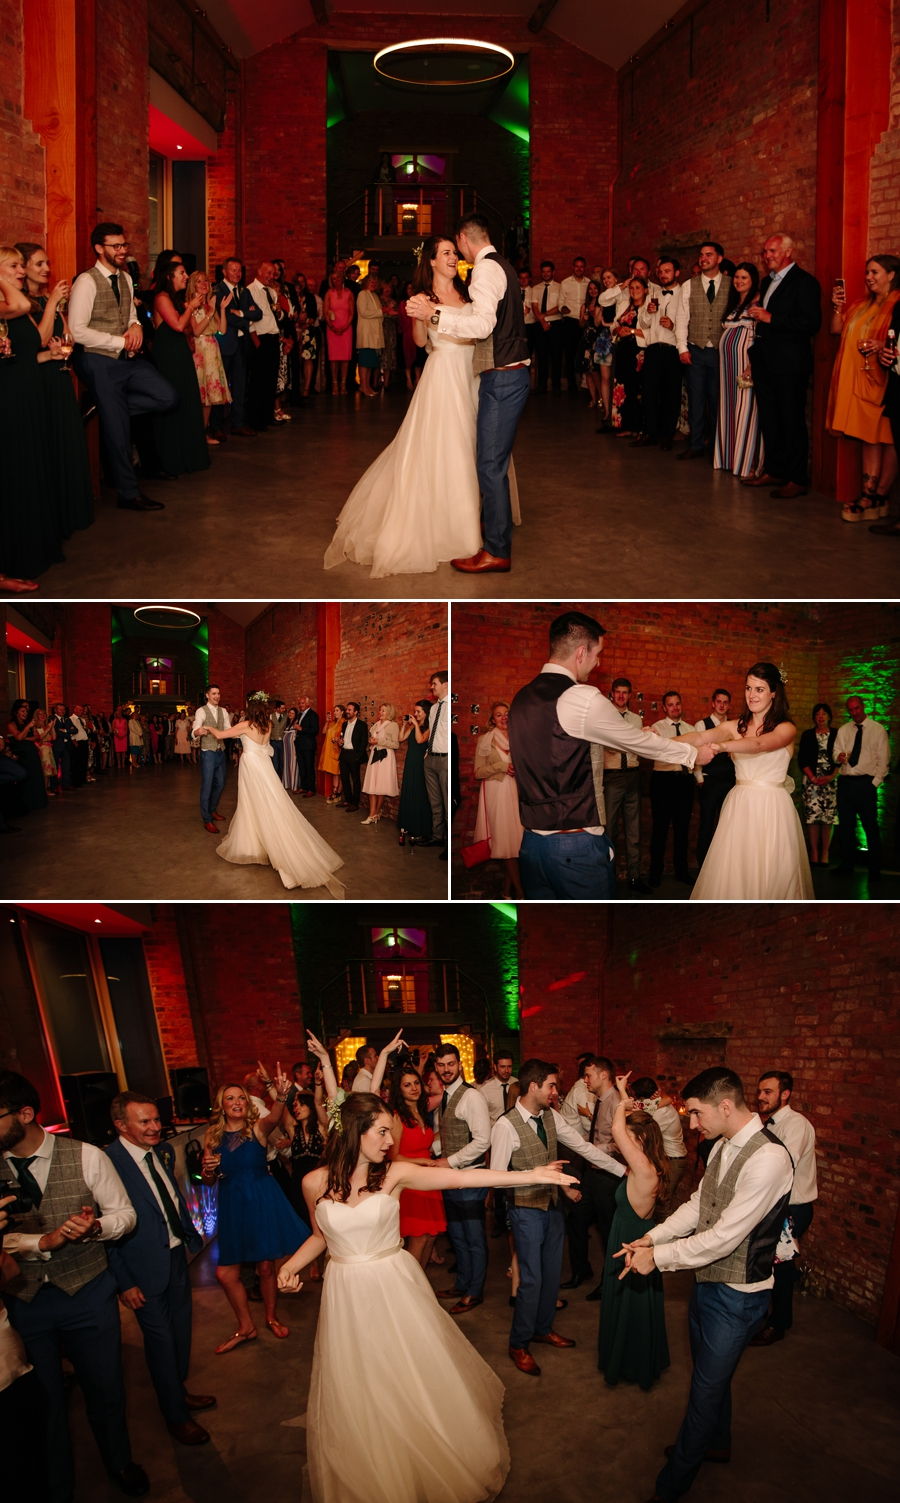 Bride and Groom enjoying their first dance while their guest watch